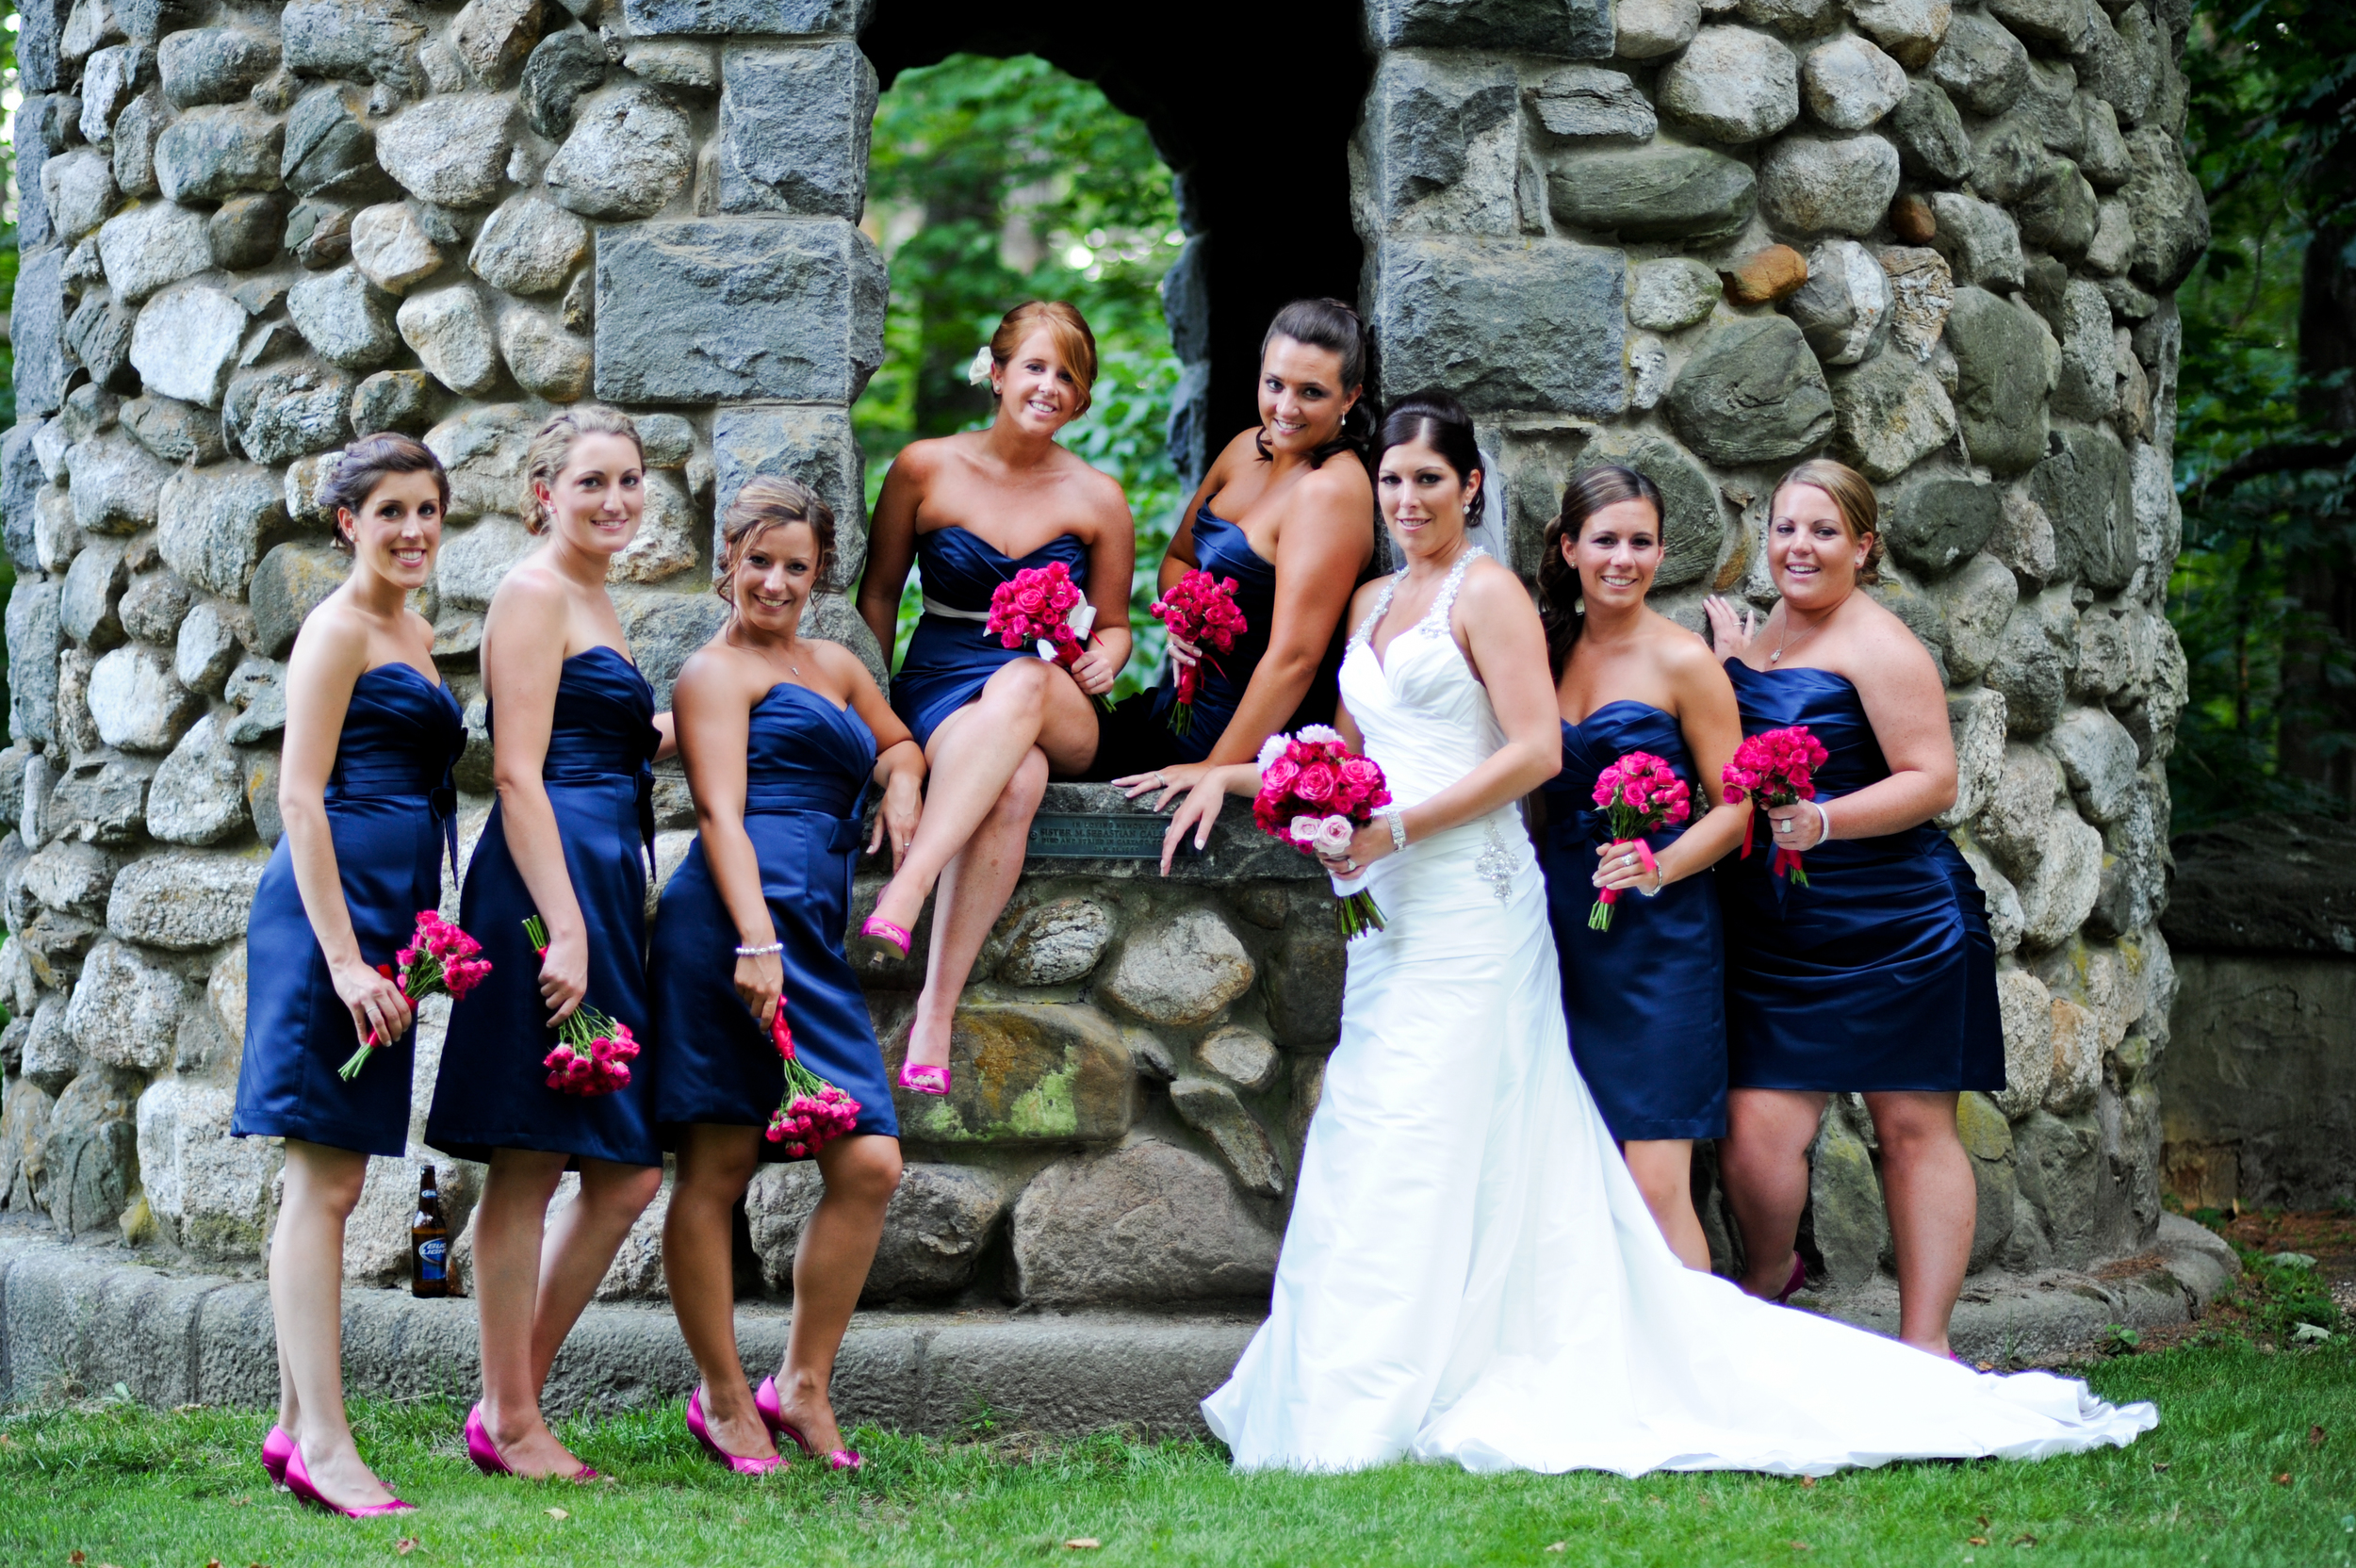 Our lovely bride and her bridesmaids